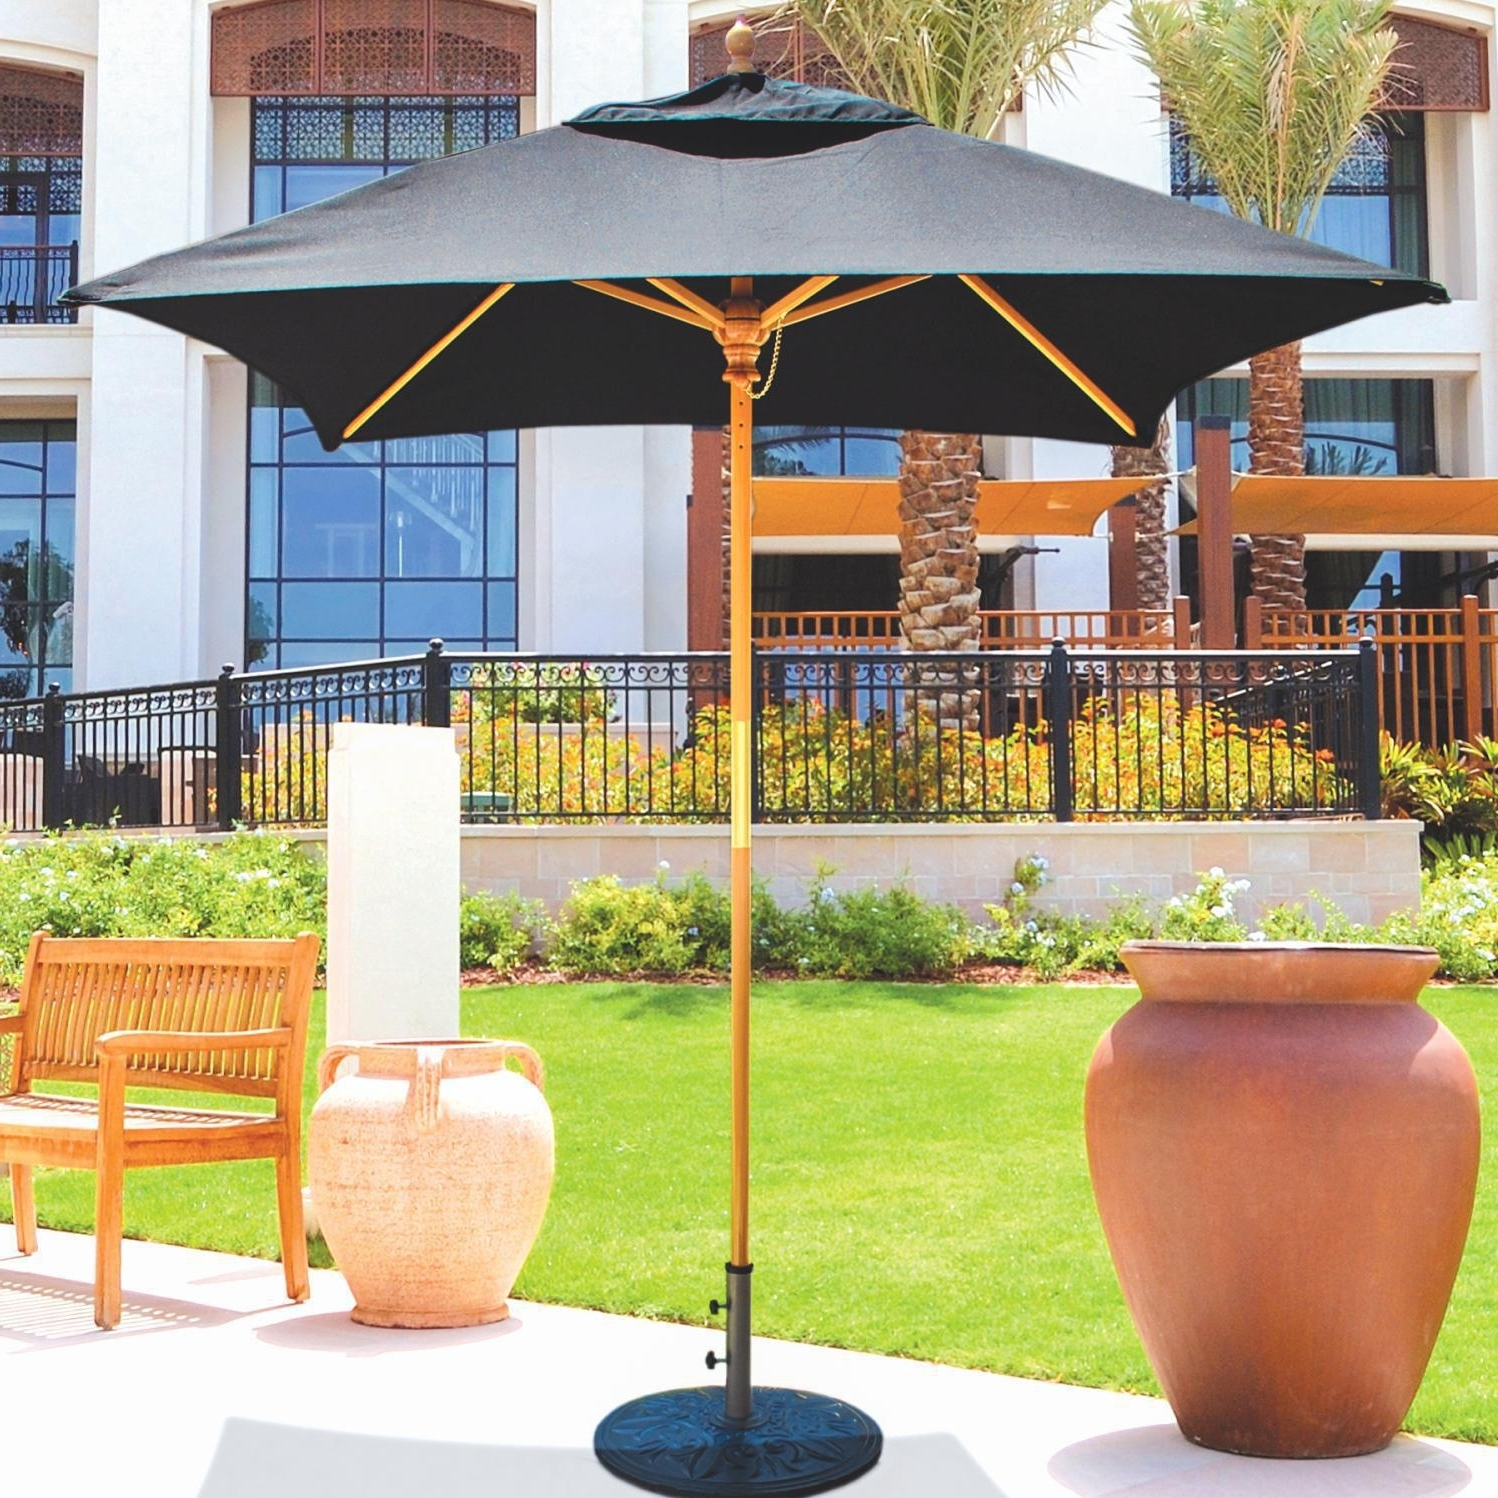 Current 6 Ft Patio Umbrellas Intended For Galtech 6 Ft Wood Square Patio Umbrella With Manual Lift – Light (View 12 of 20)